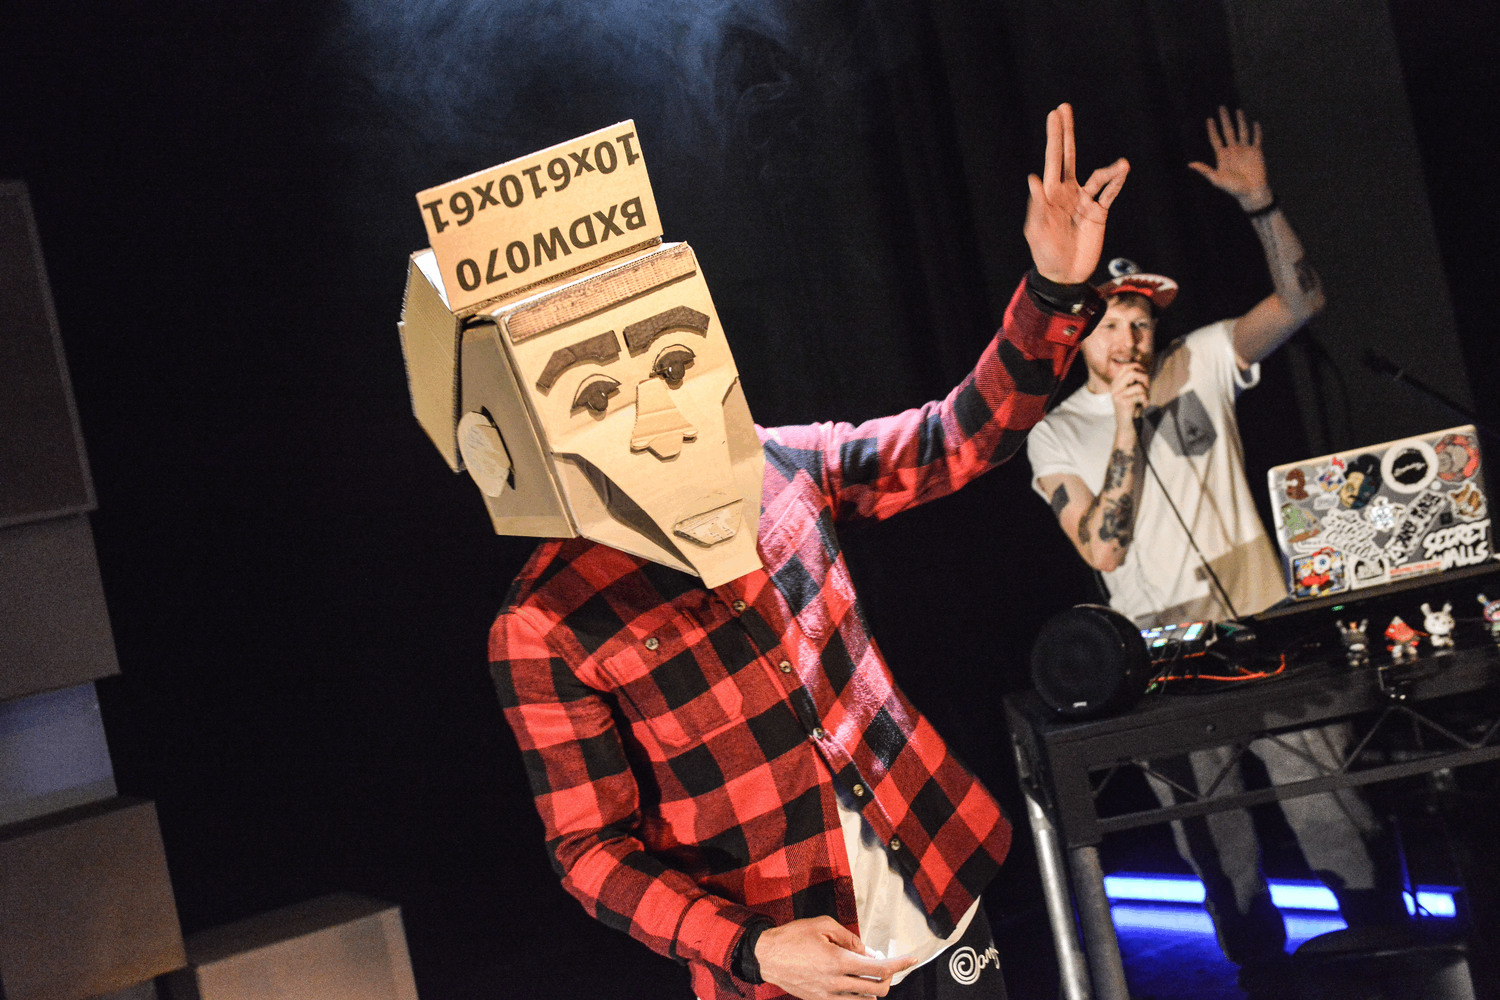 A man stands with his hand in the air. He is wearing a cardboard box with a face on it. In the background another man stands with his hand also in the air. He is beatboxing